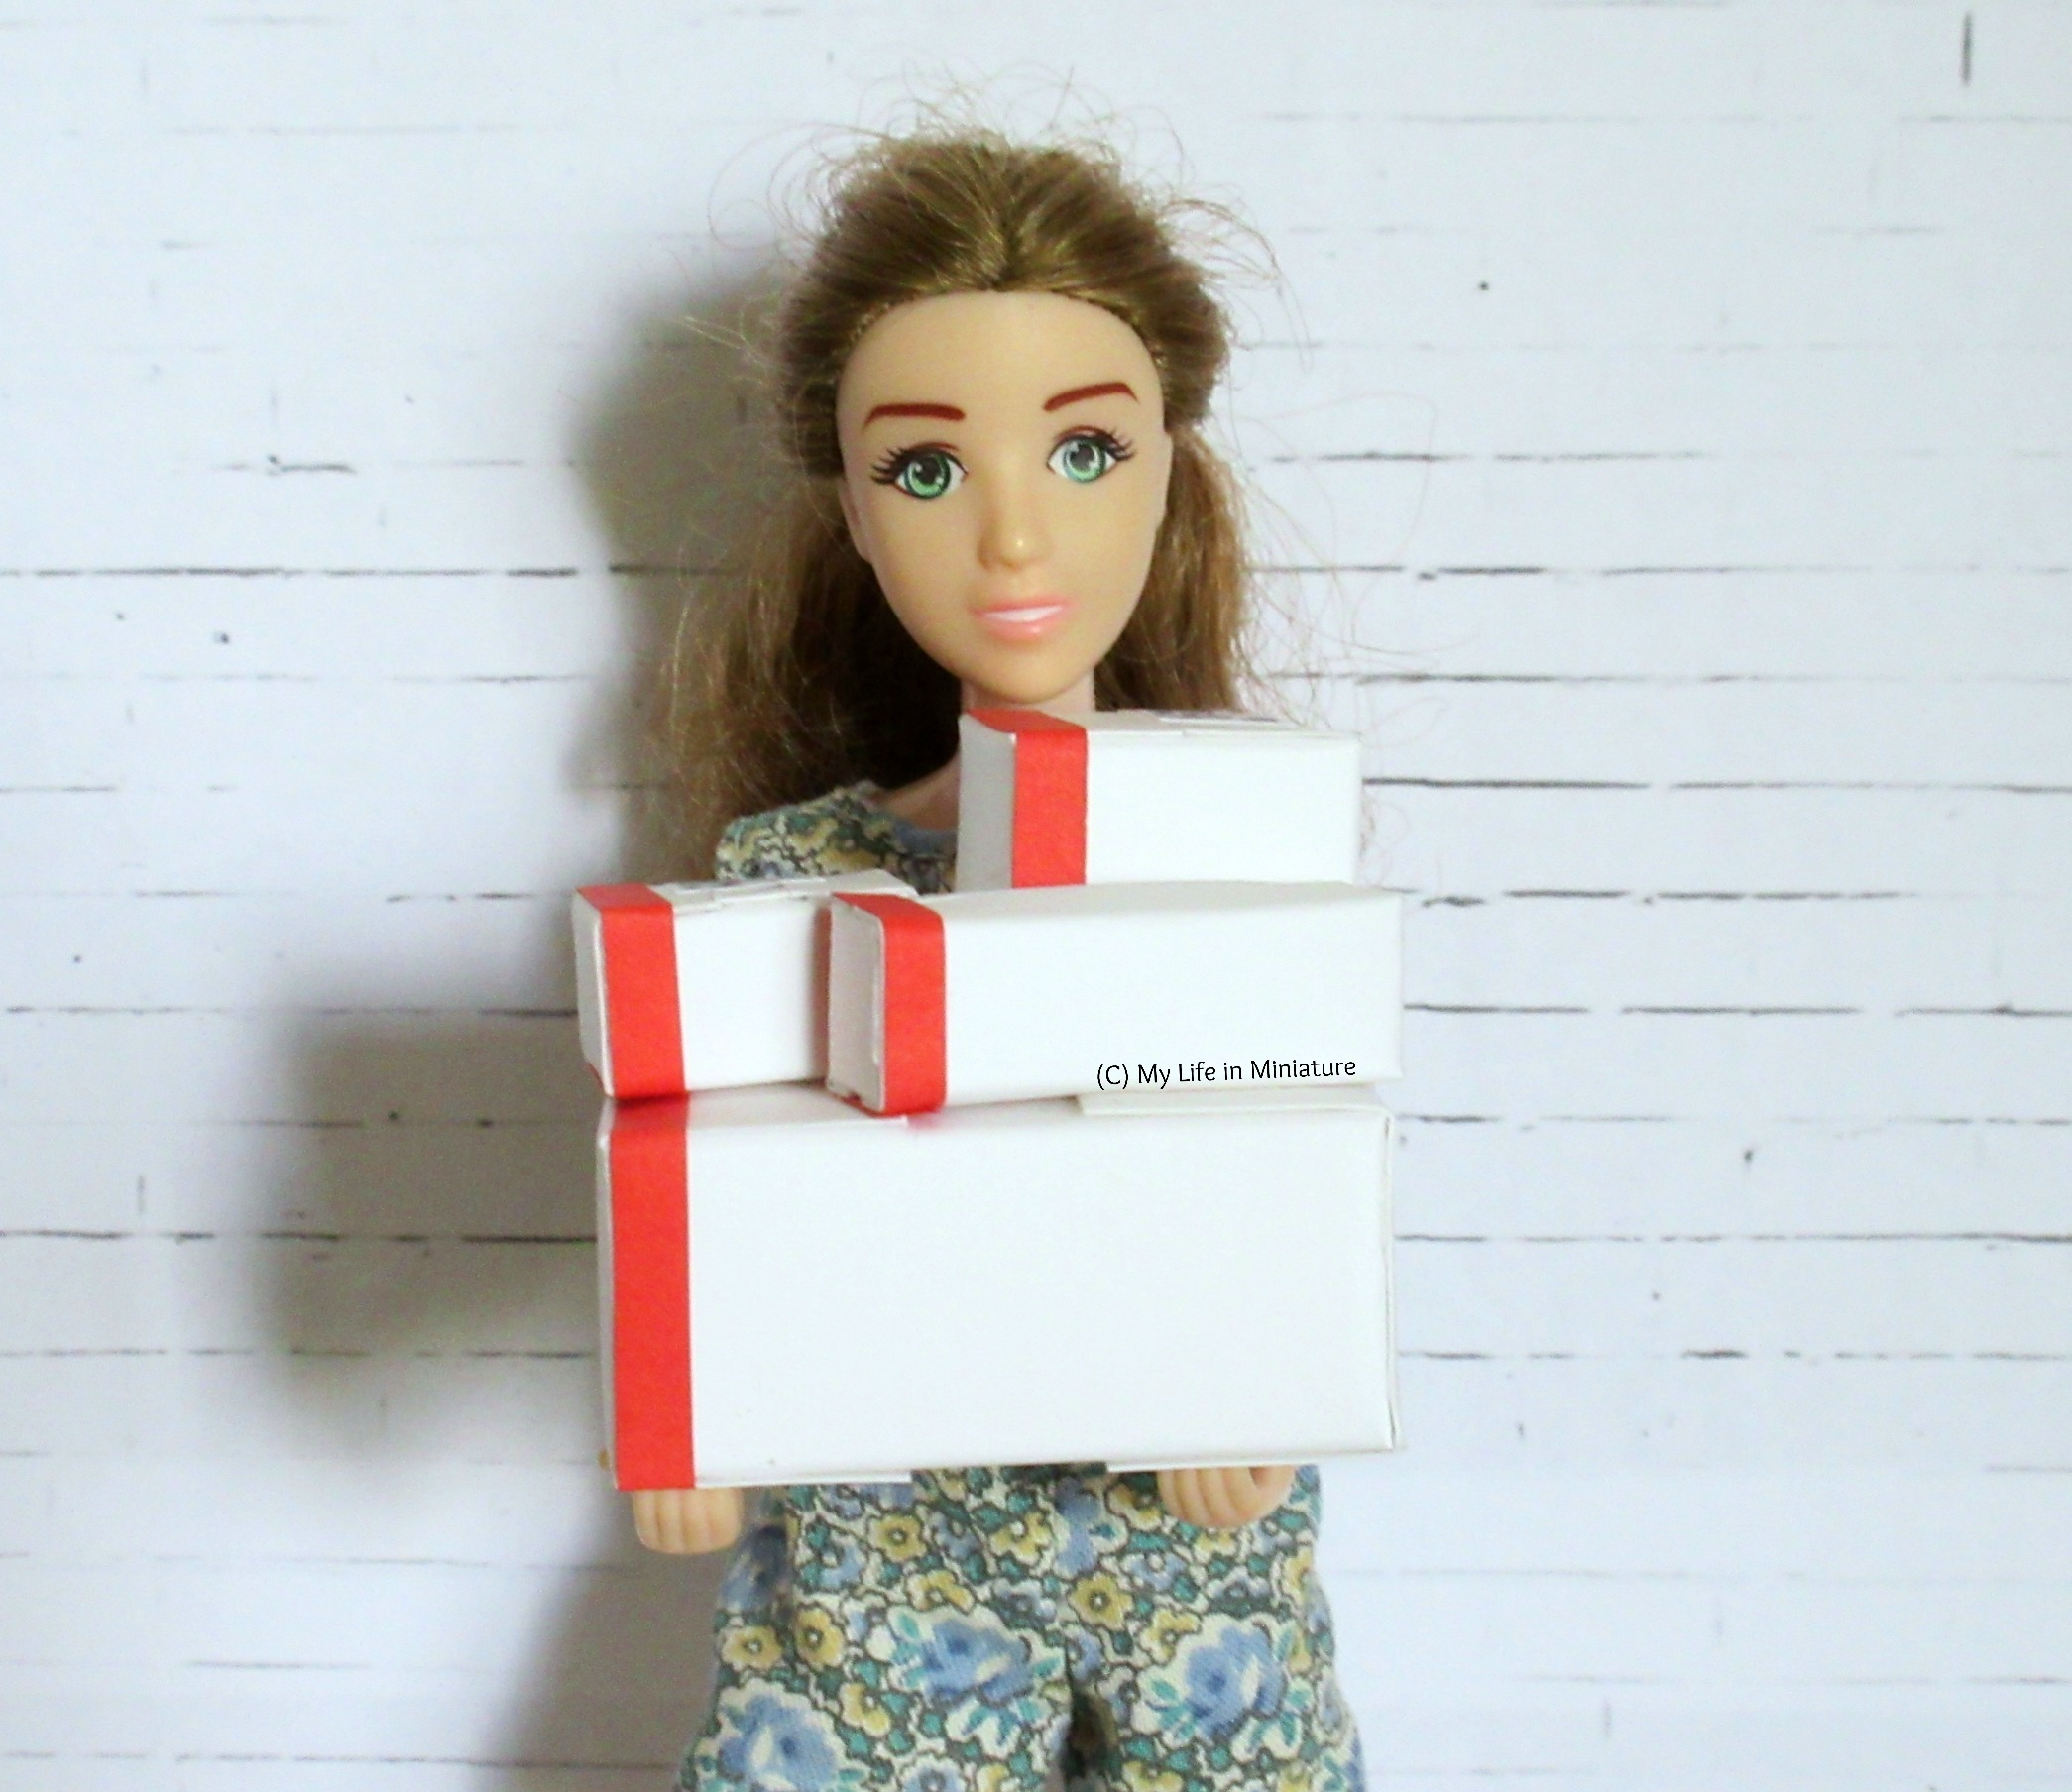 Sarah holds a stack of white boxes with red stripes on the side. They are various sizes, with three smaller ones stacked on a large one.